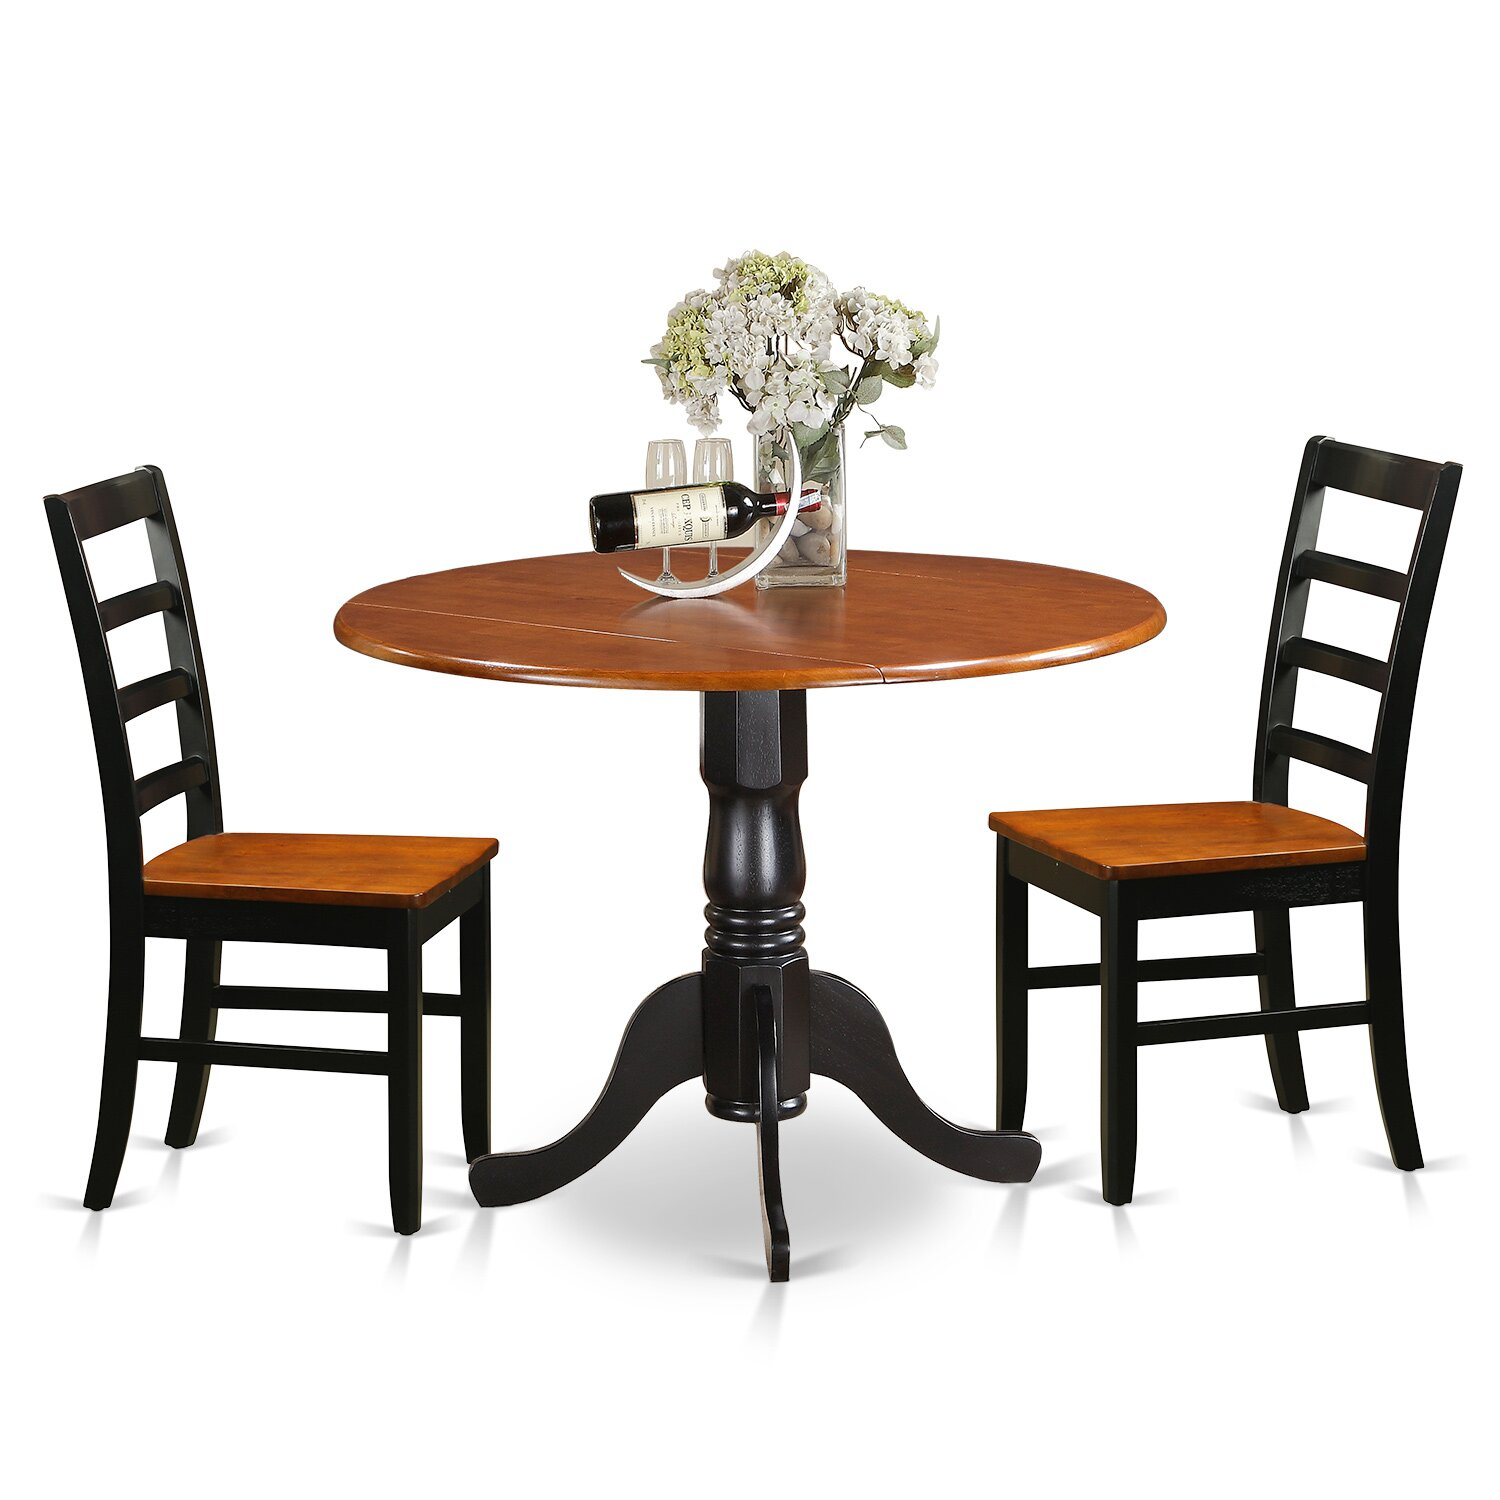 East west 3 piece dining set wayfair for 3 piece dining room set